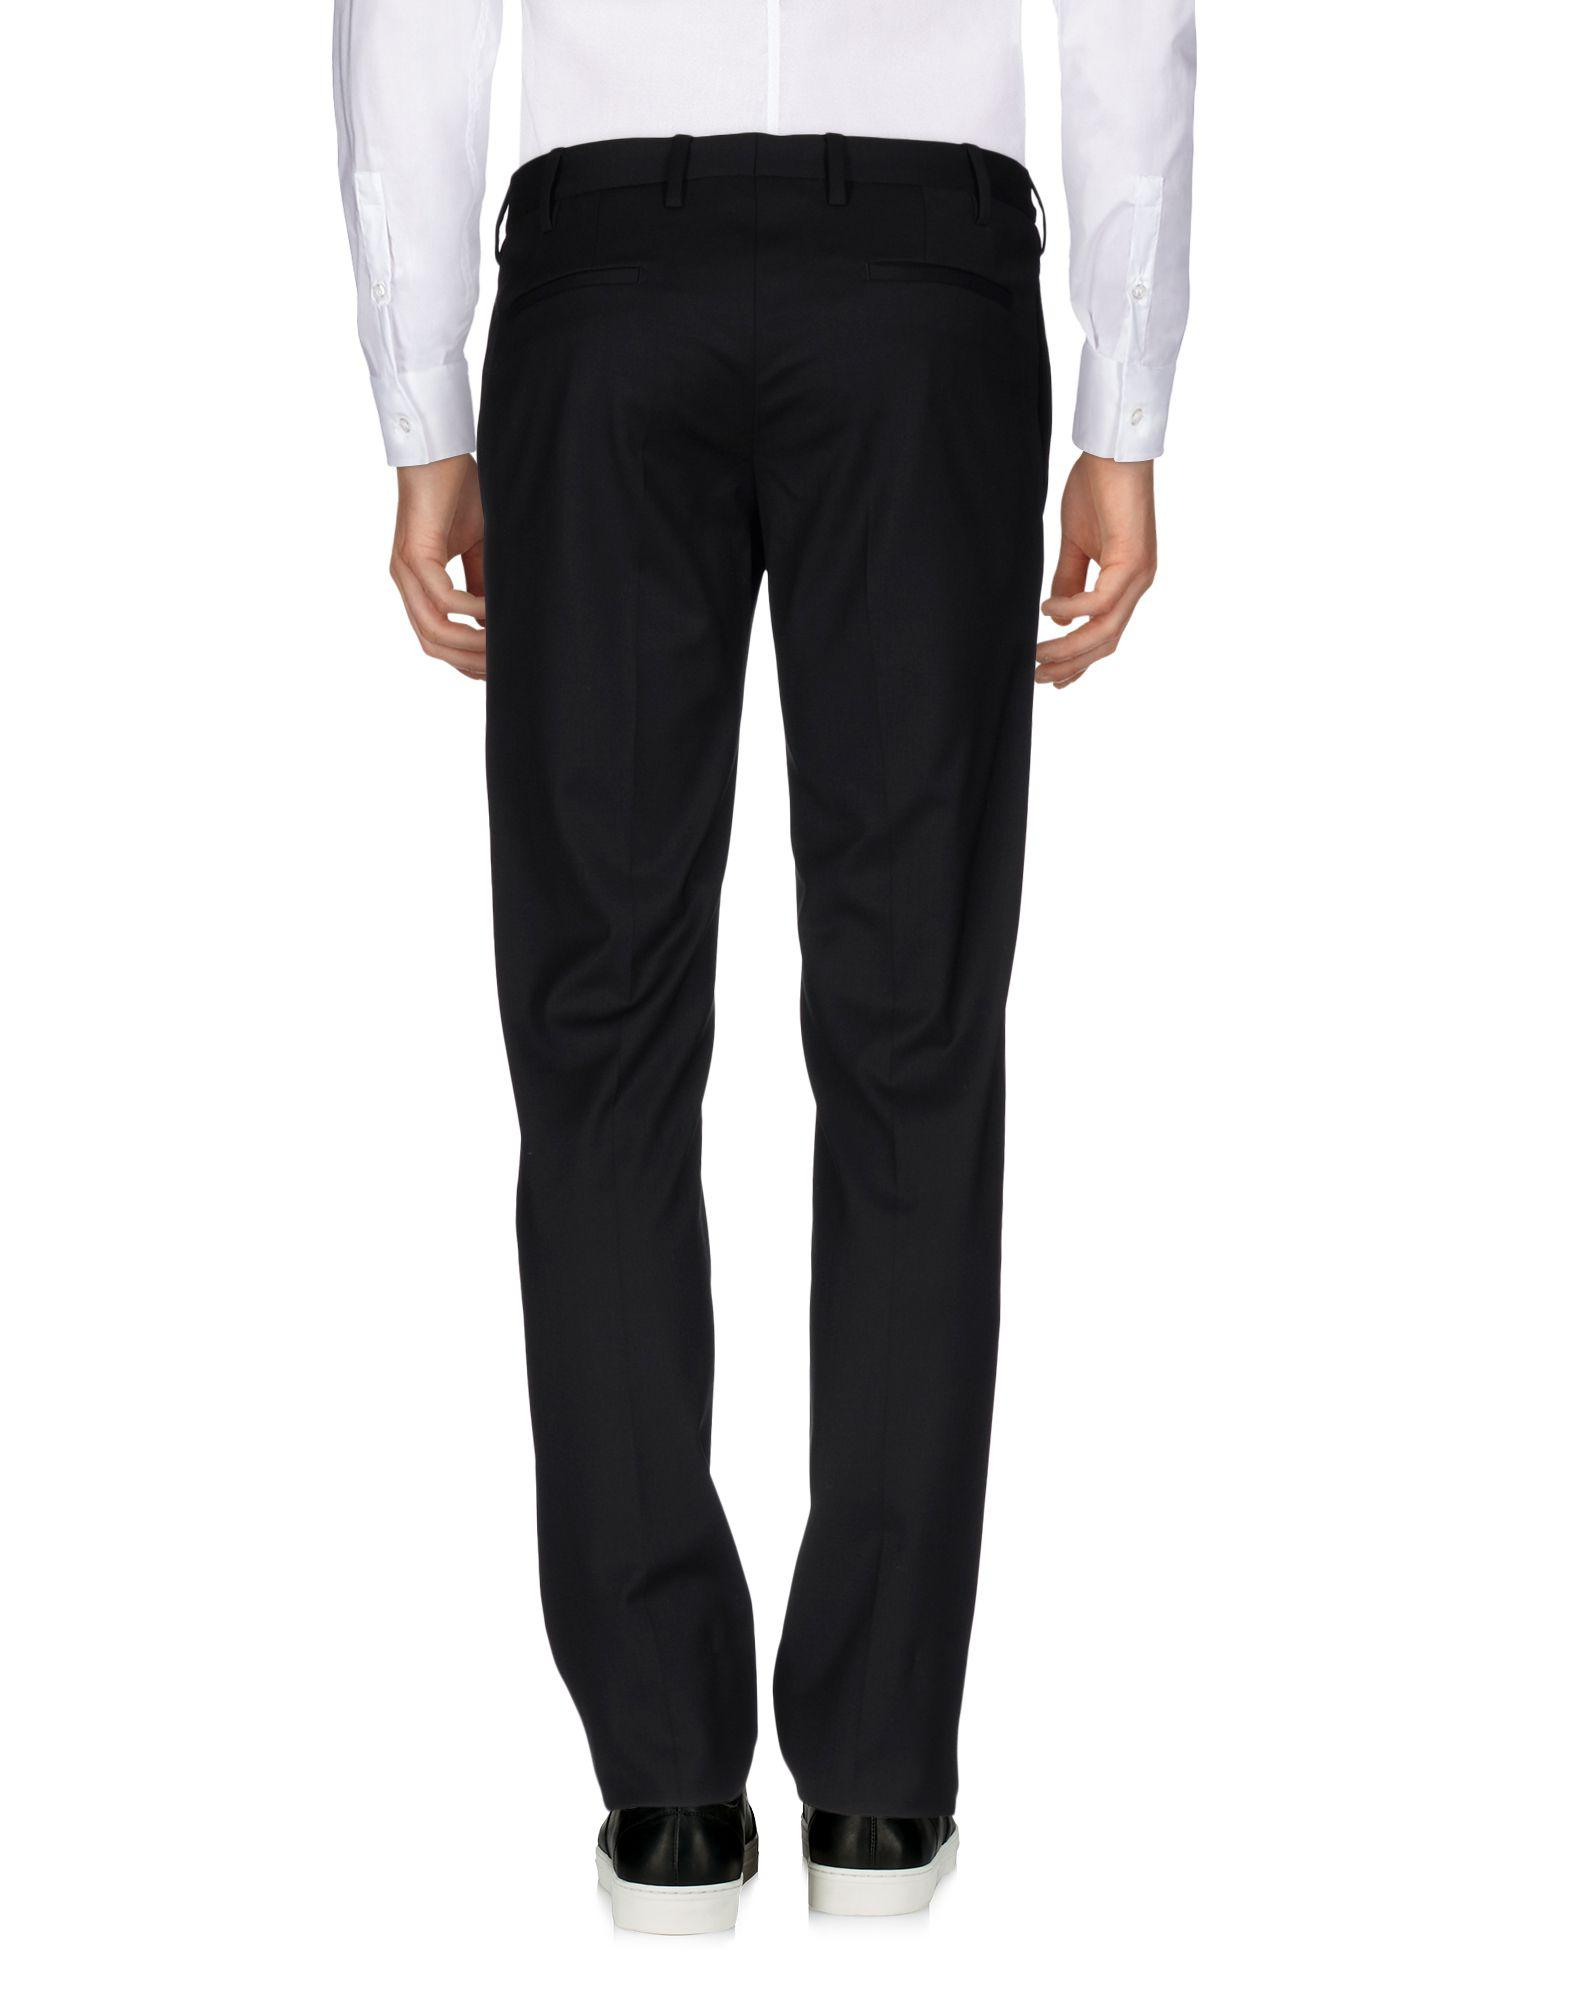 06649818acee Lyst - Belstaff Casual Pants in Black for Men